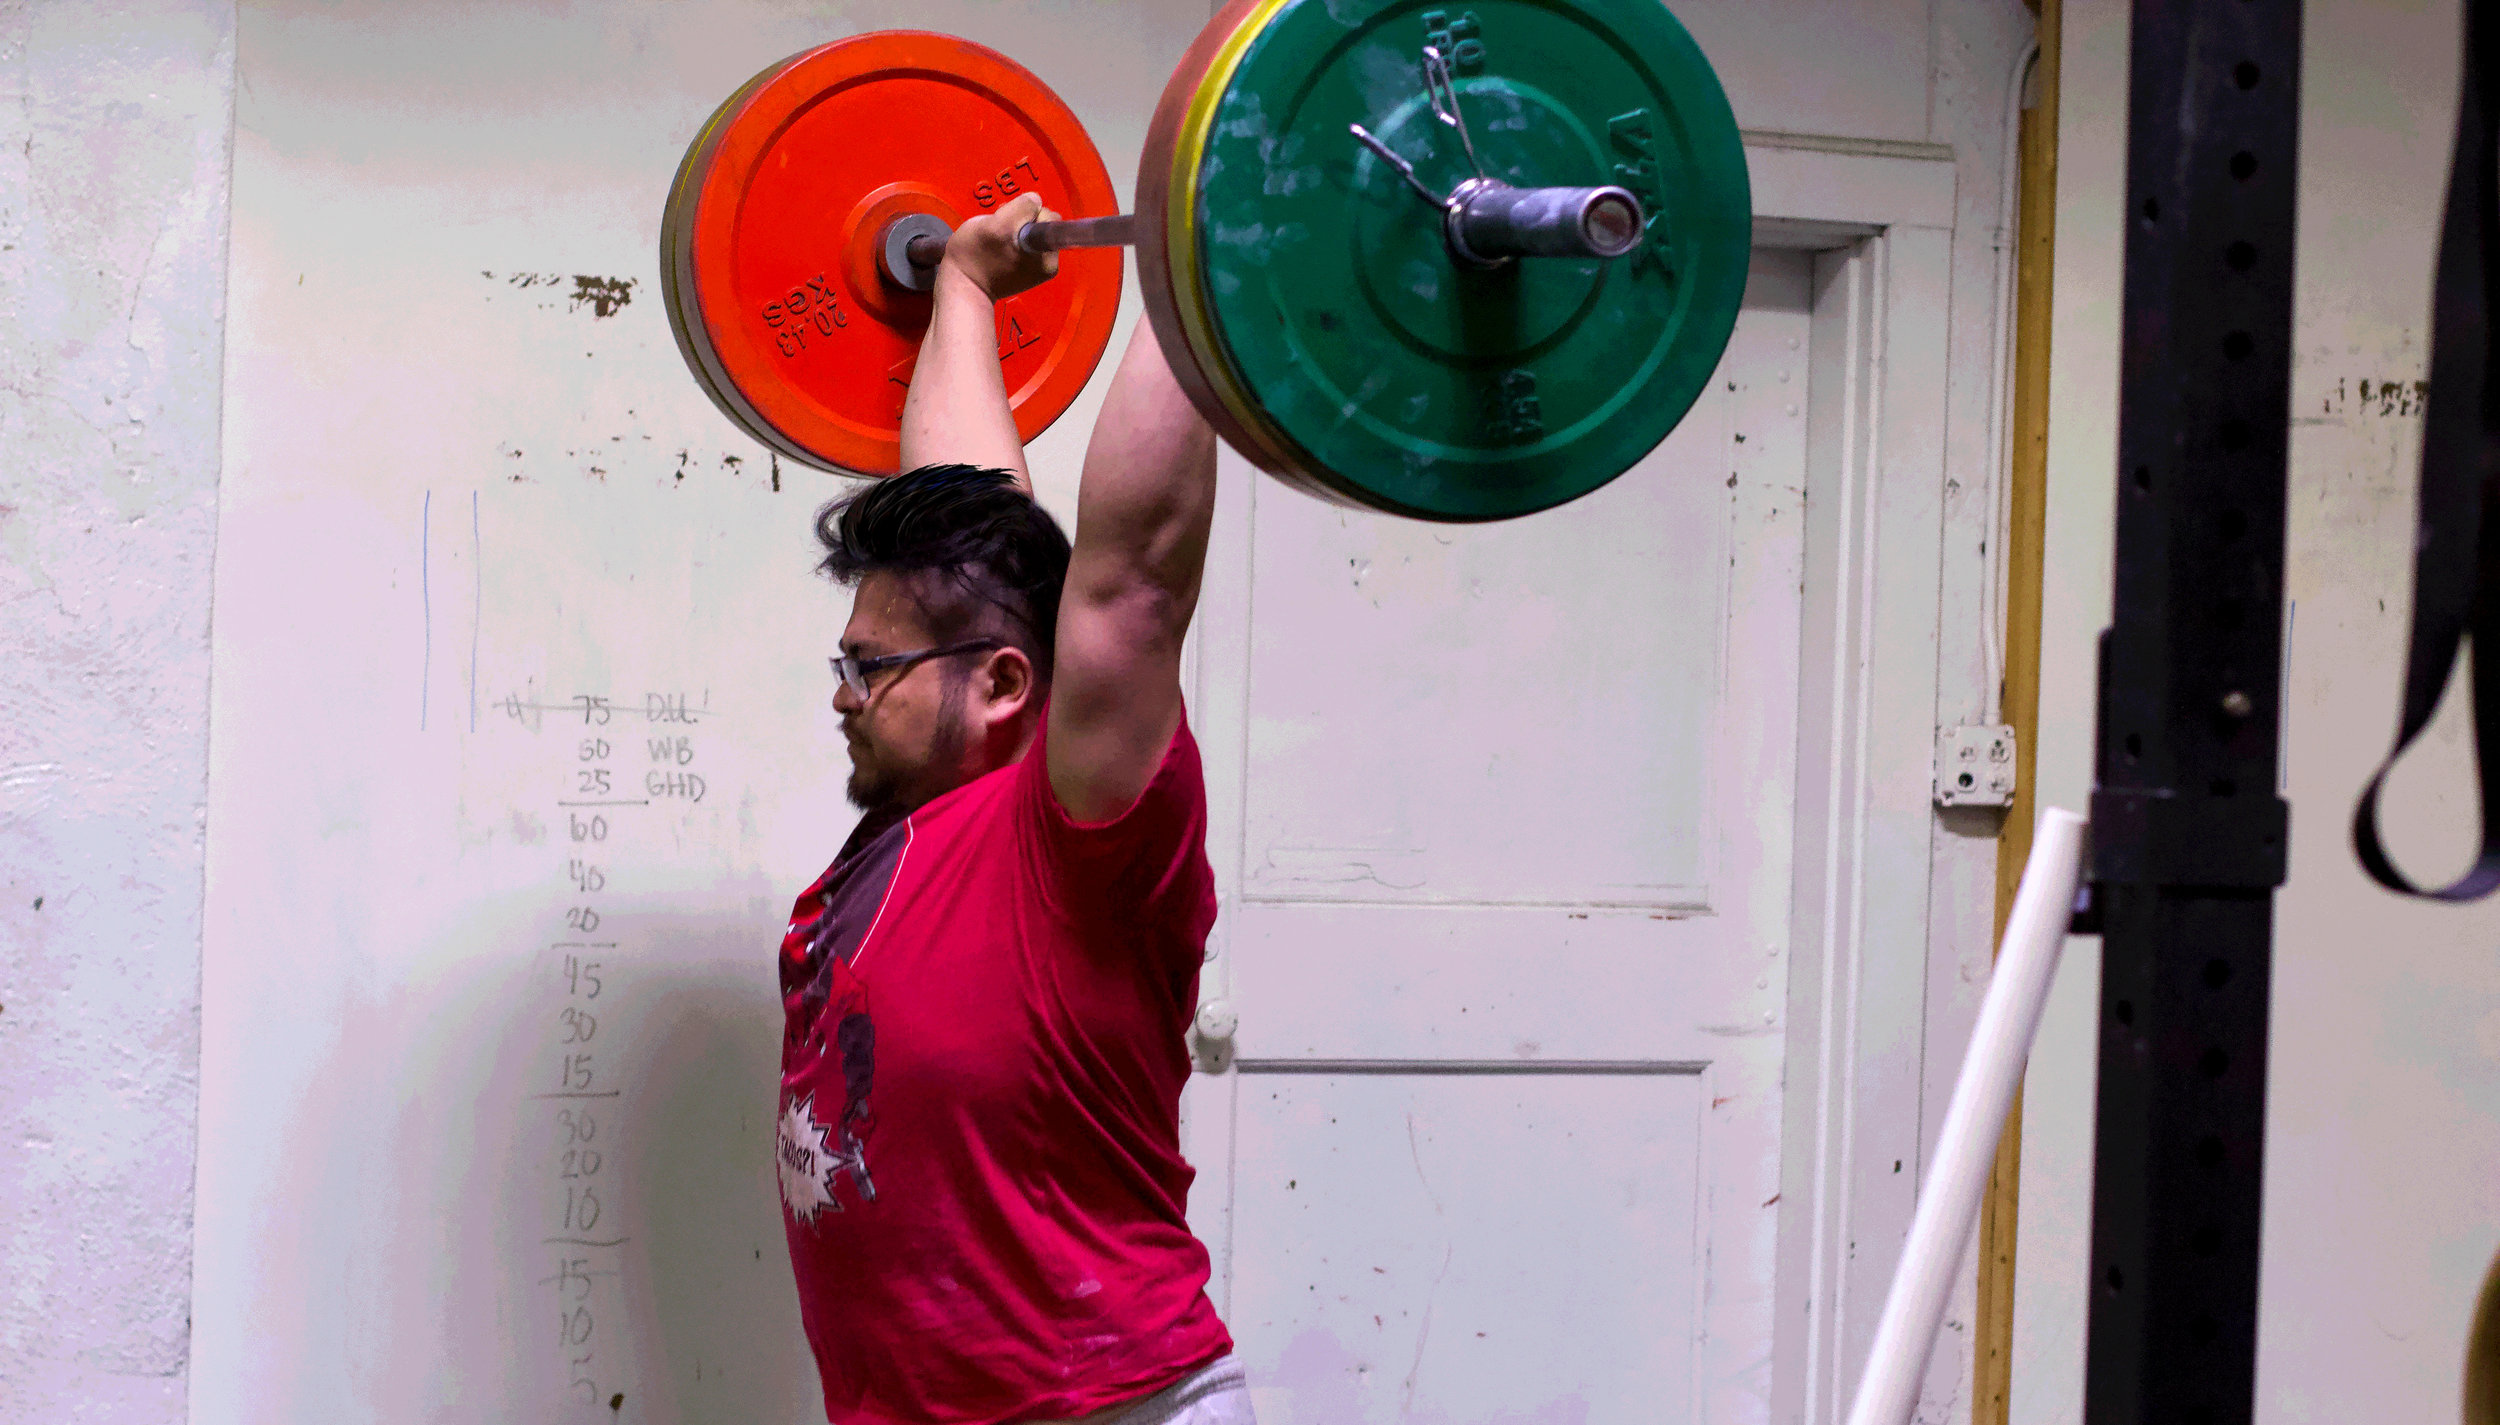 Here's PVCF athlete, Bueno Buenaventura getting after some heavy clean and jerks!